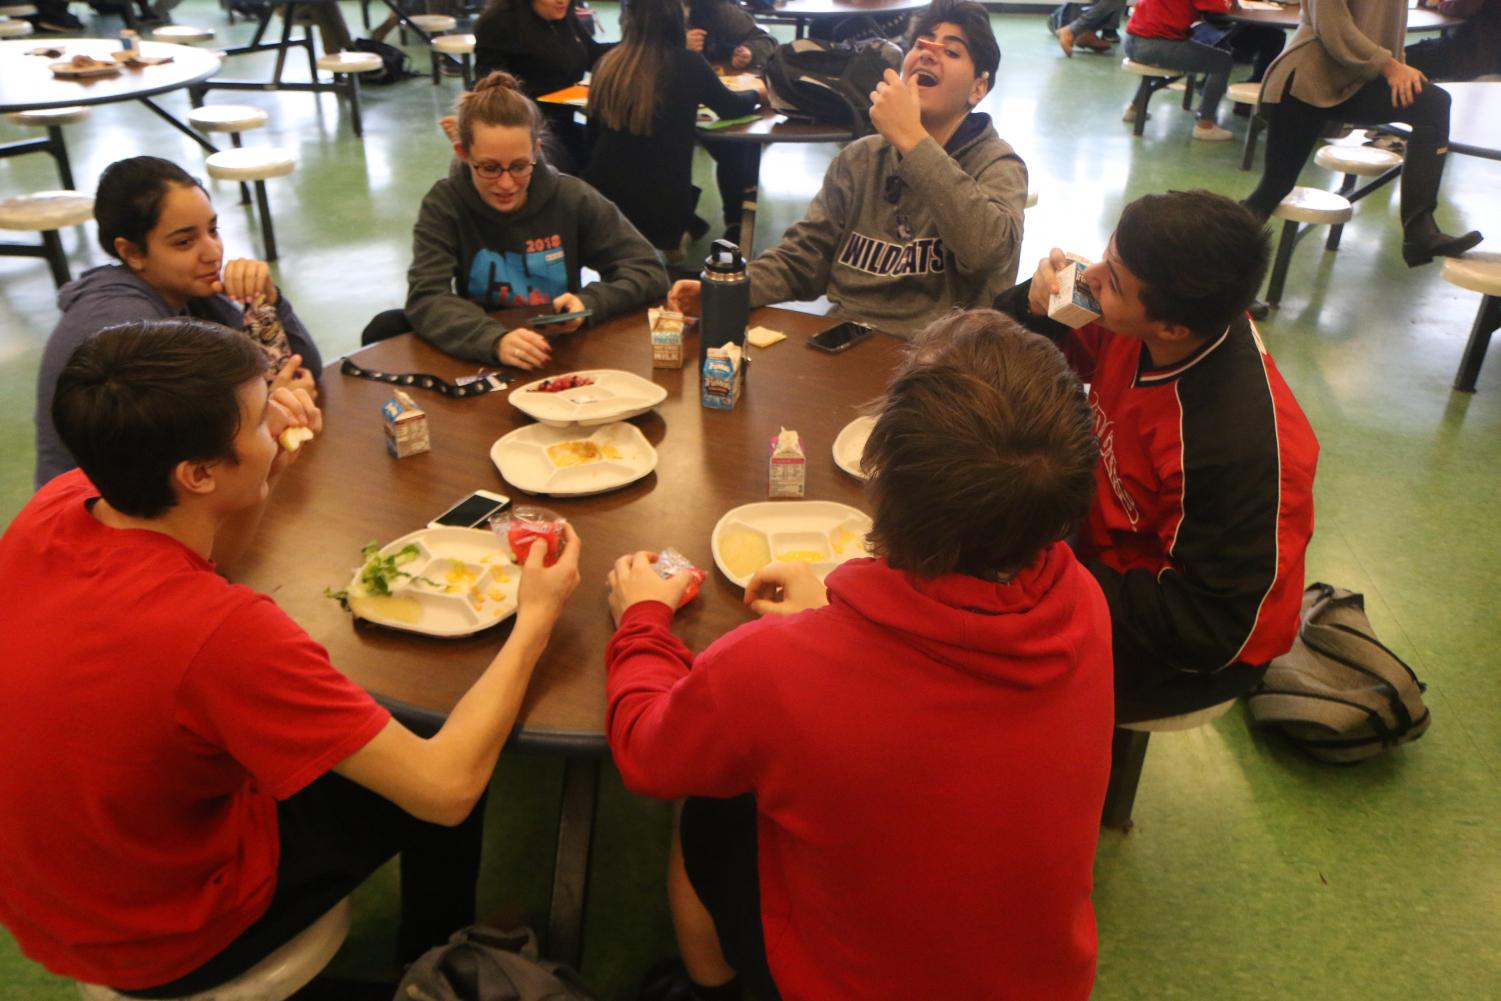 Student conversing in the lunchroom.